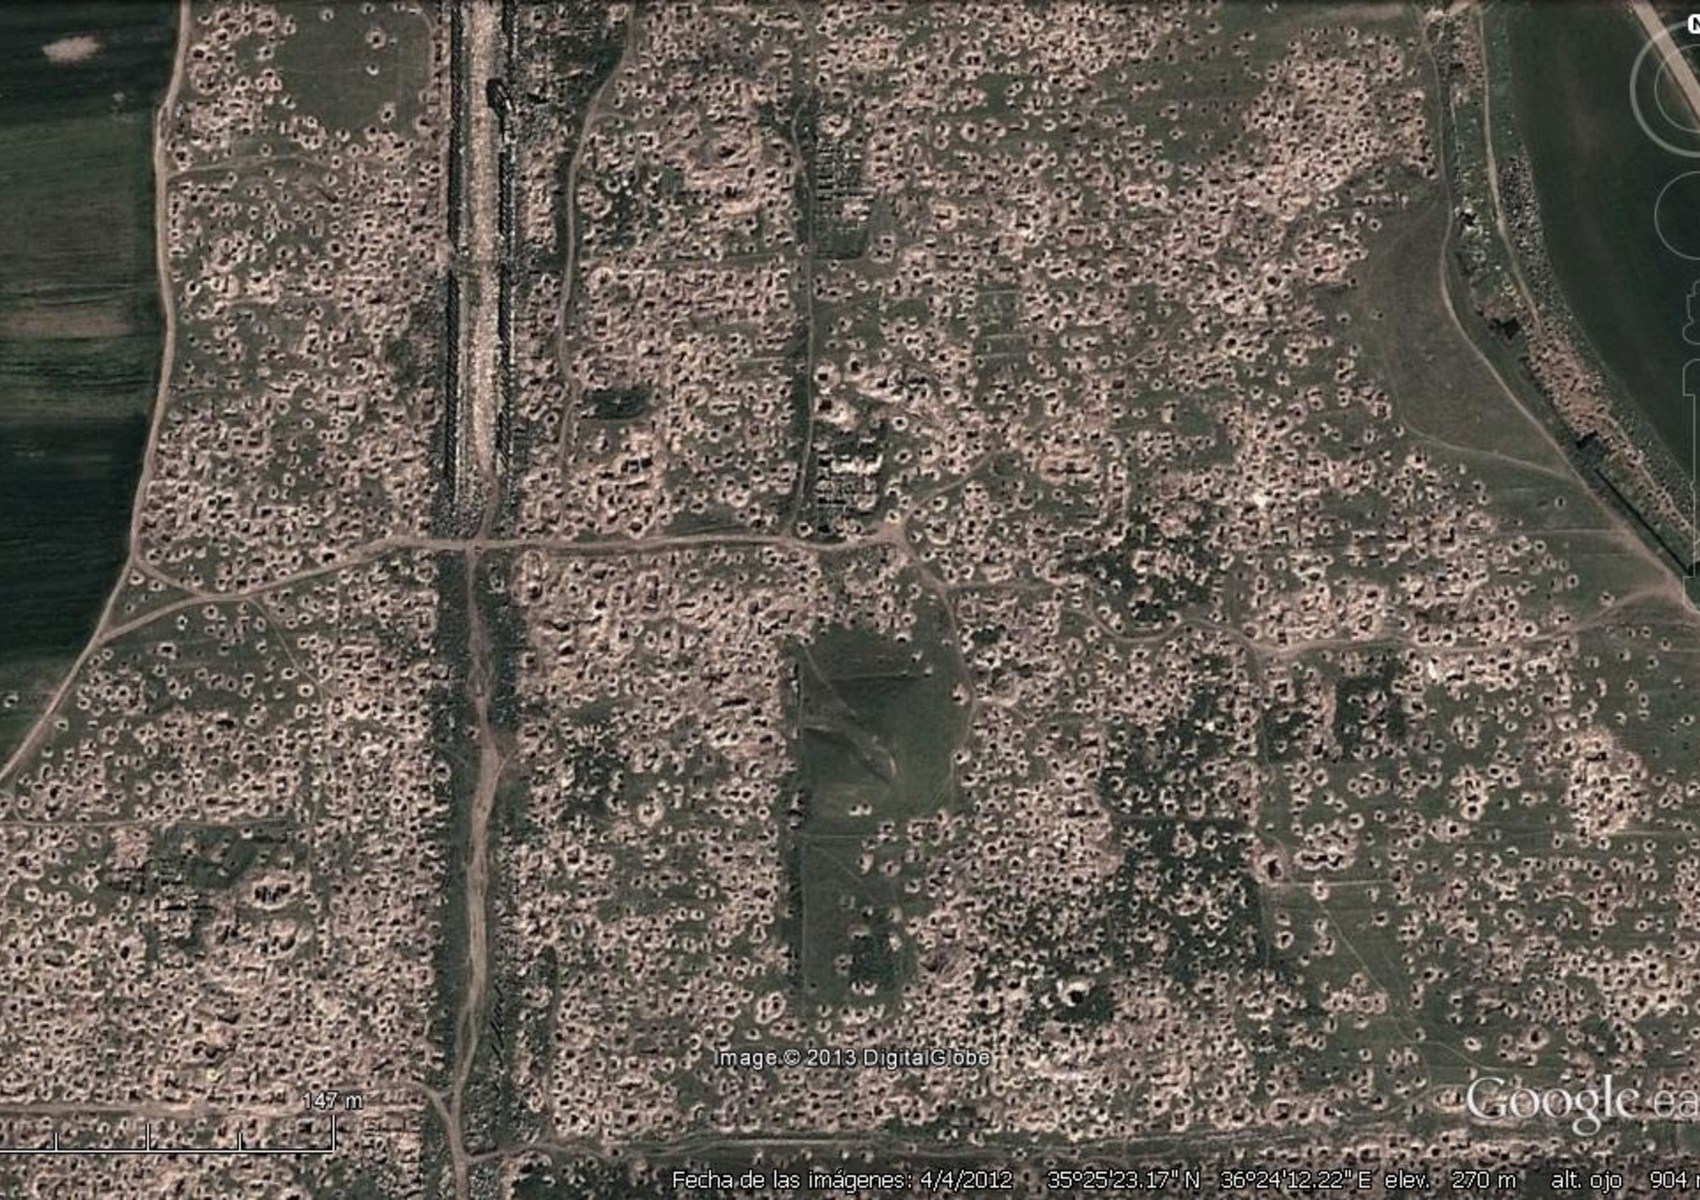 Google-Earth-image-of-looters-pits-at-Apamea-Syria-Credit